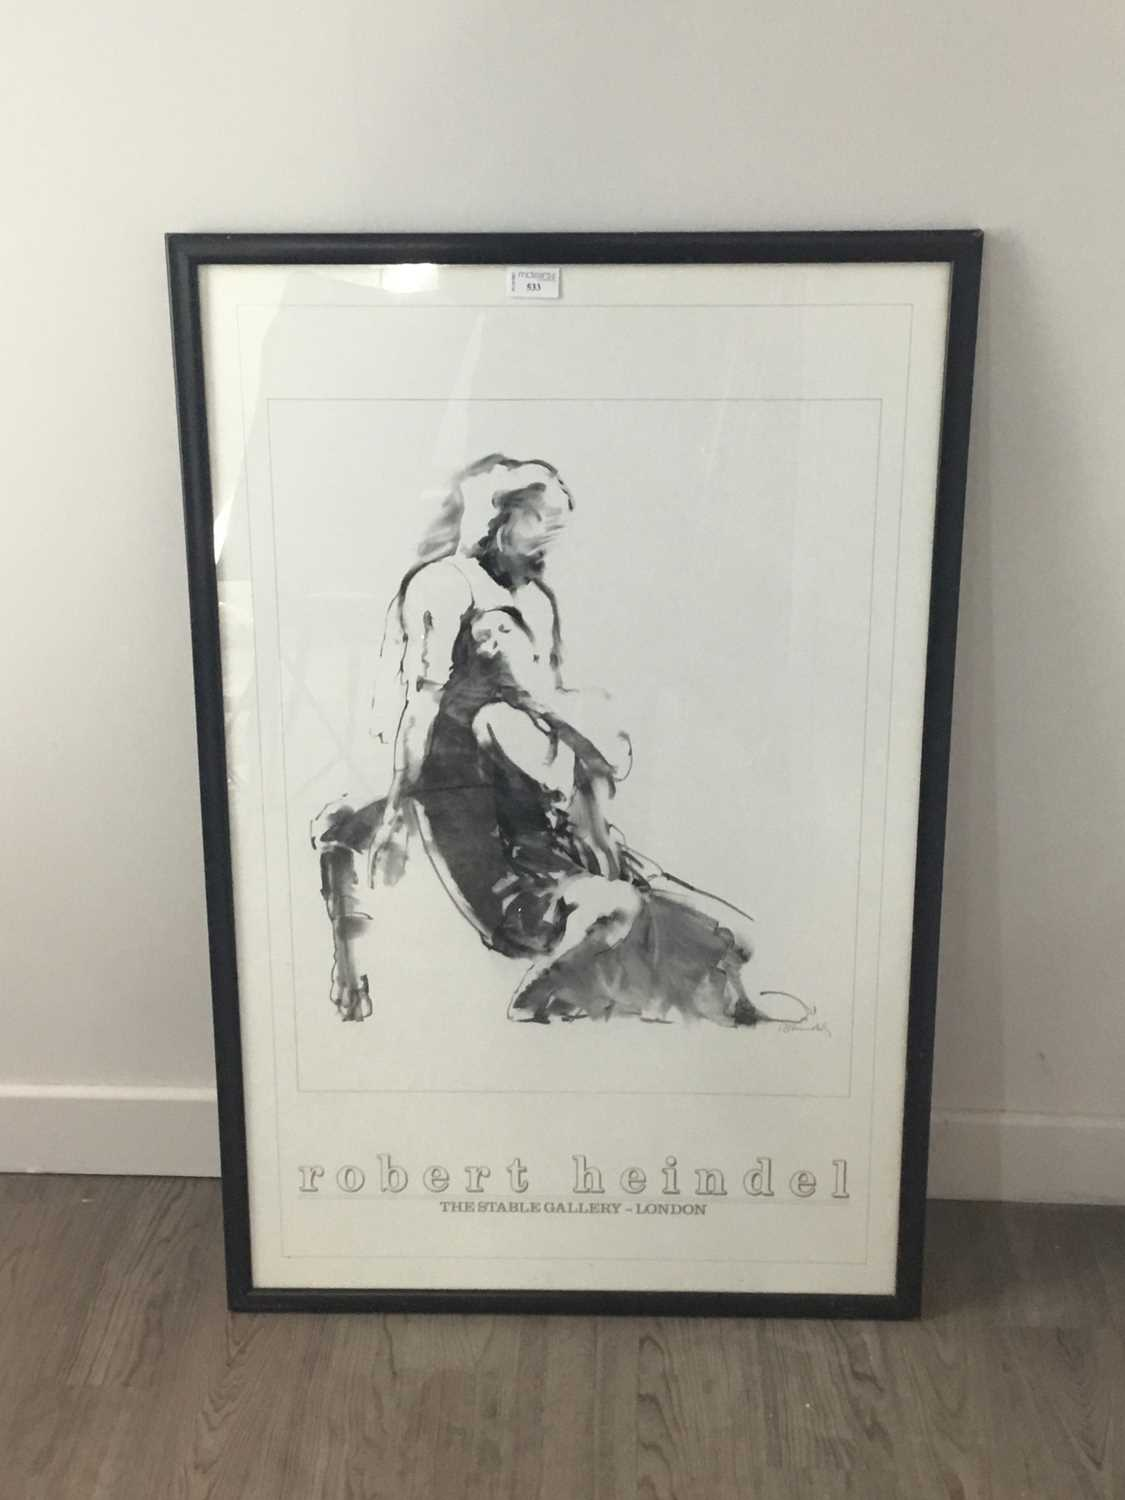 Lot 533 - A ROBERT HEINDEL STABLE GALLERY LONDON EXHIBITION POSTER